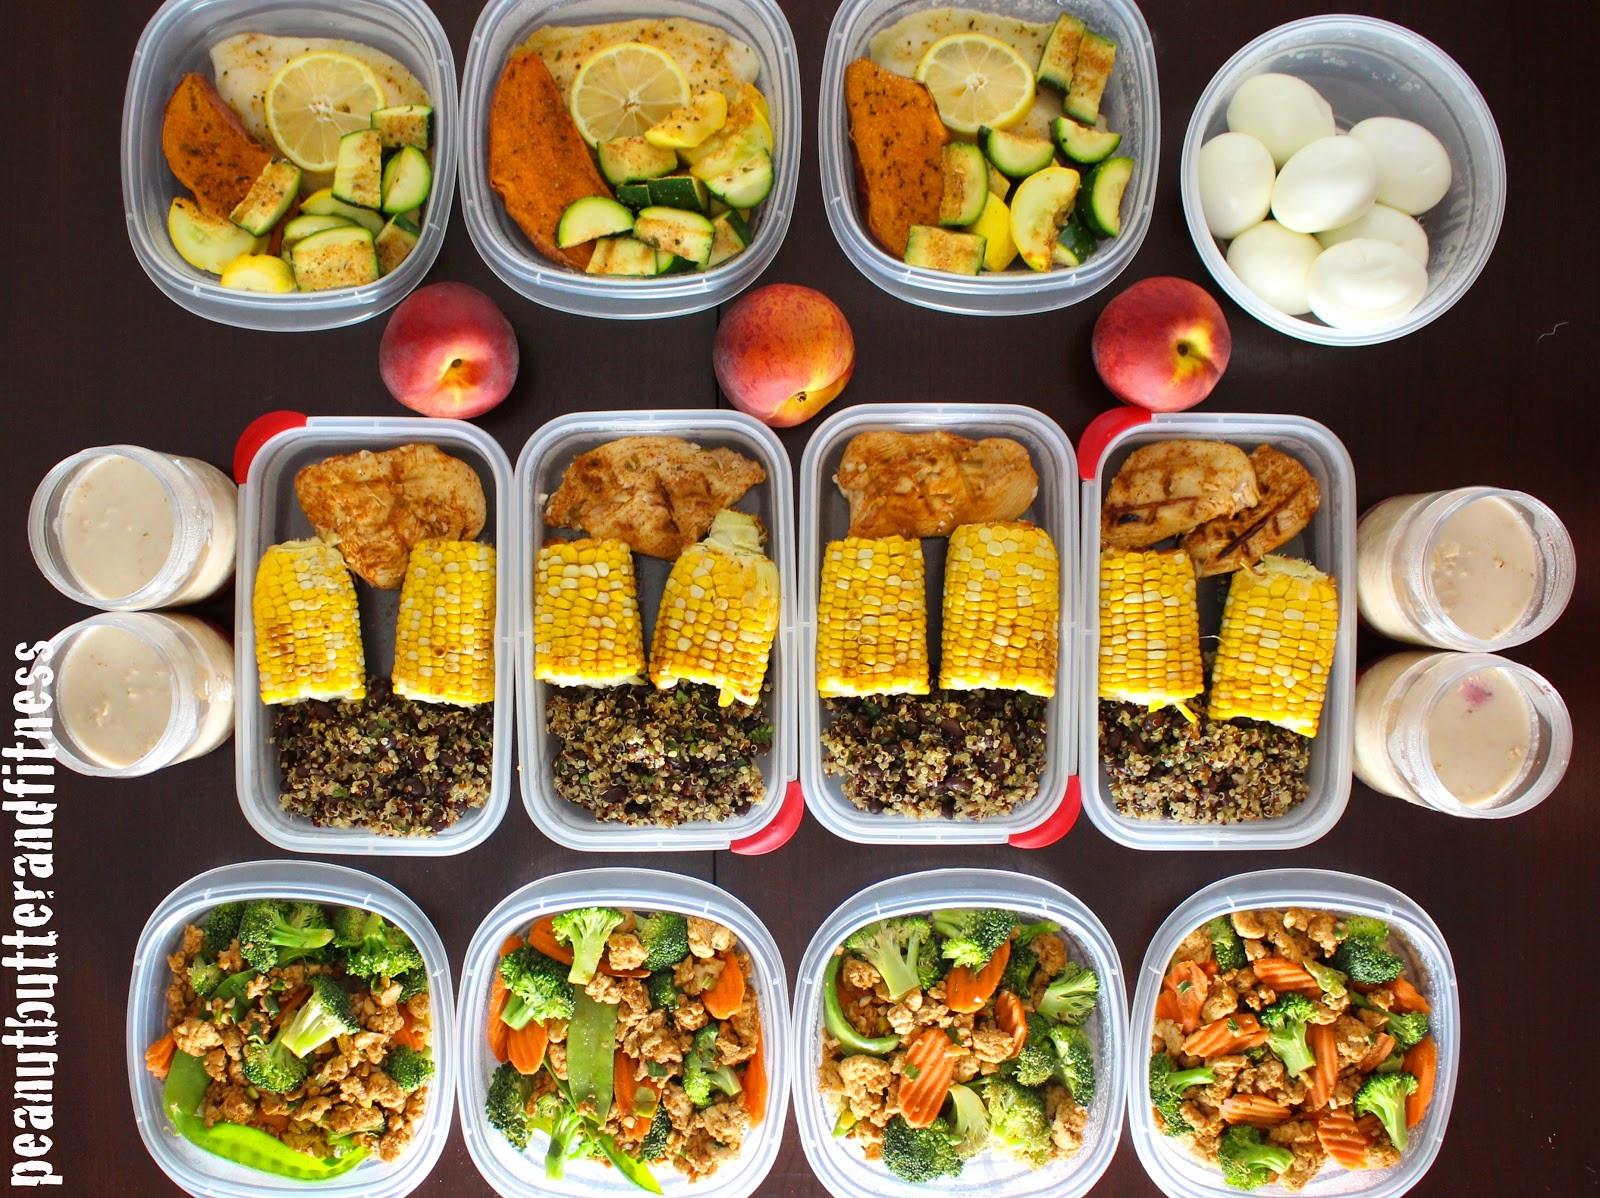 Healthy Lunches For The Week  Meal Prep Week of May 18th Peanut Butter and Fitness